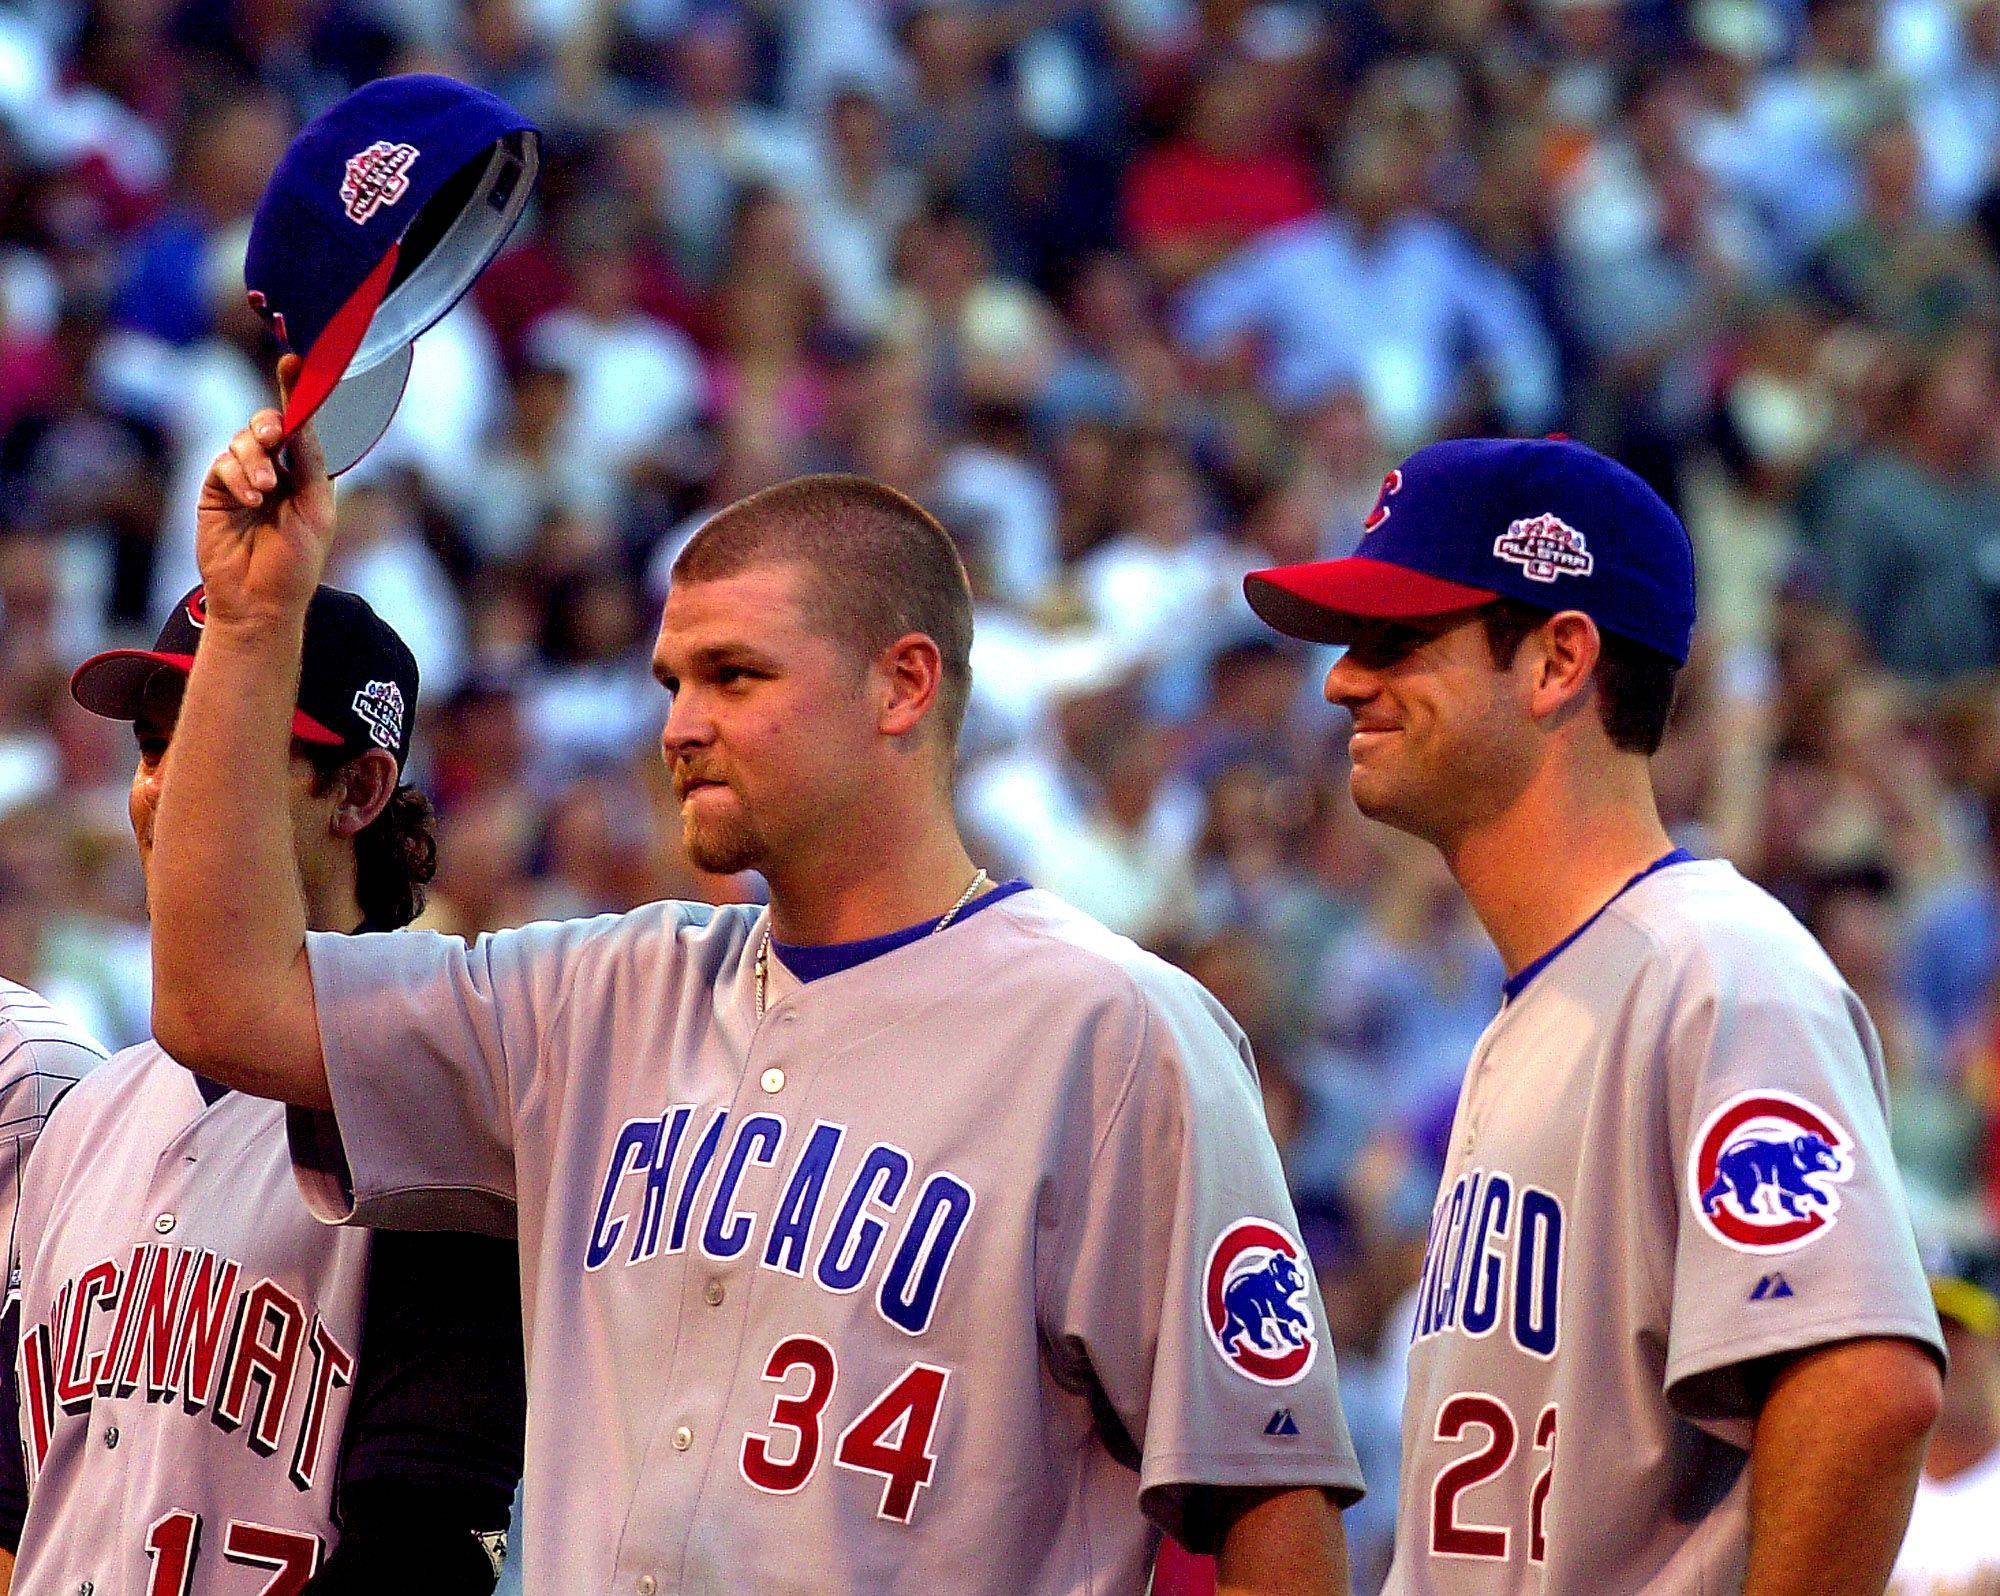 Images of Kerry Wood through the years